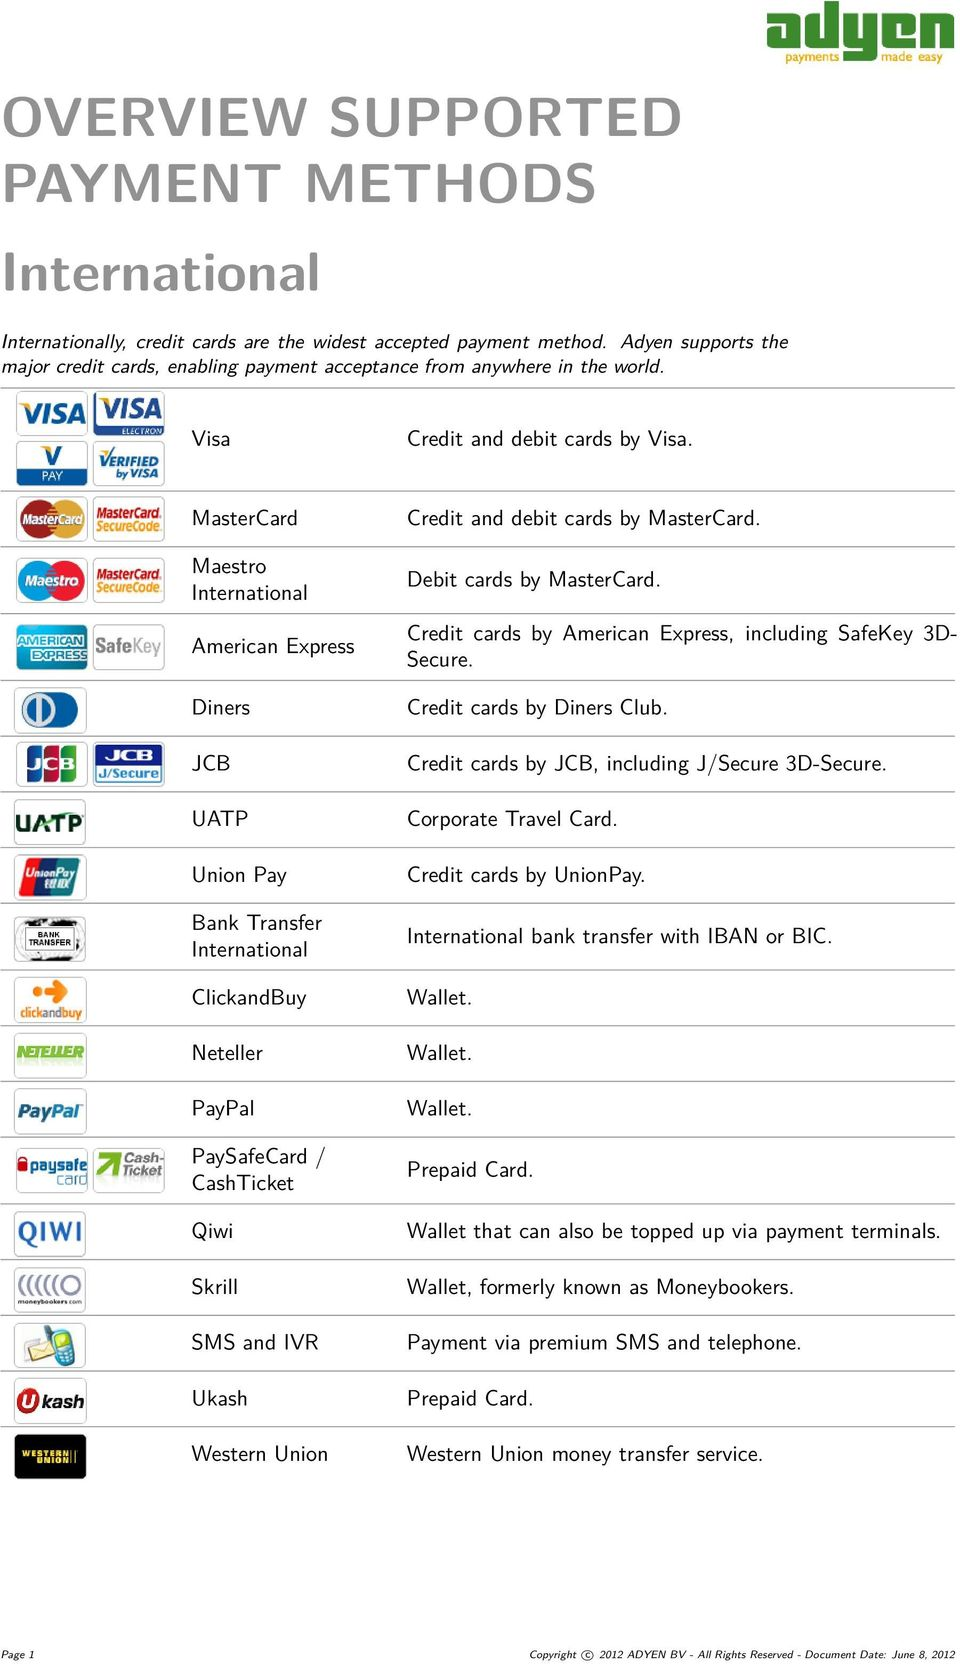 MasterCard Maestro International American Express Diners JCB UATP Union Pay International ClickandBuy Neteller PayPal PaySafeCard / CashTicket Qiwi Skrill SMS and IVR Ukash Western Union Credit and